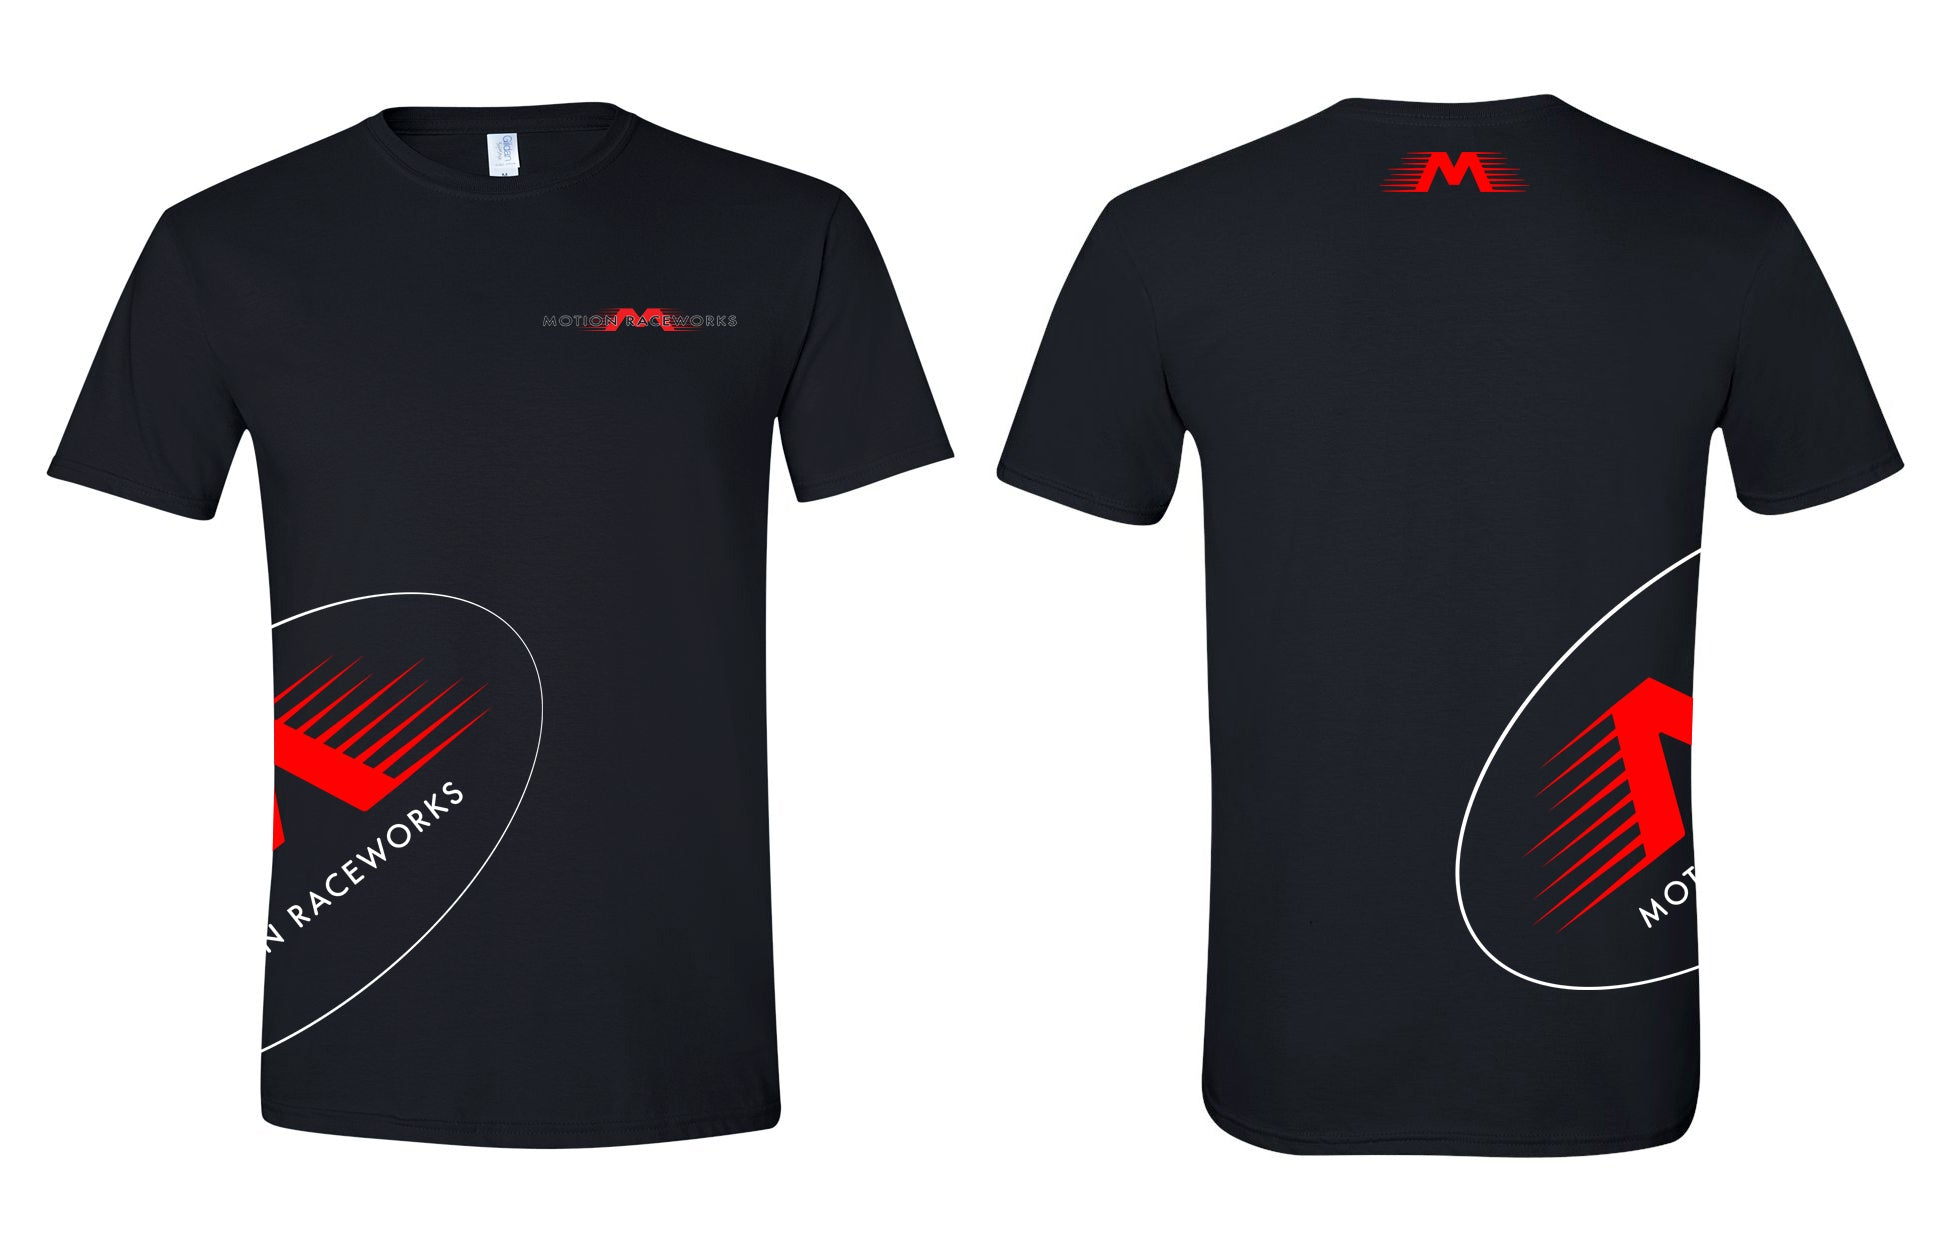 Motion Raceworks V2 Black w/ Red M T-Shirt-Motion Raceworks-Motion Raceworks